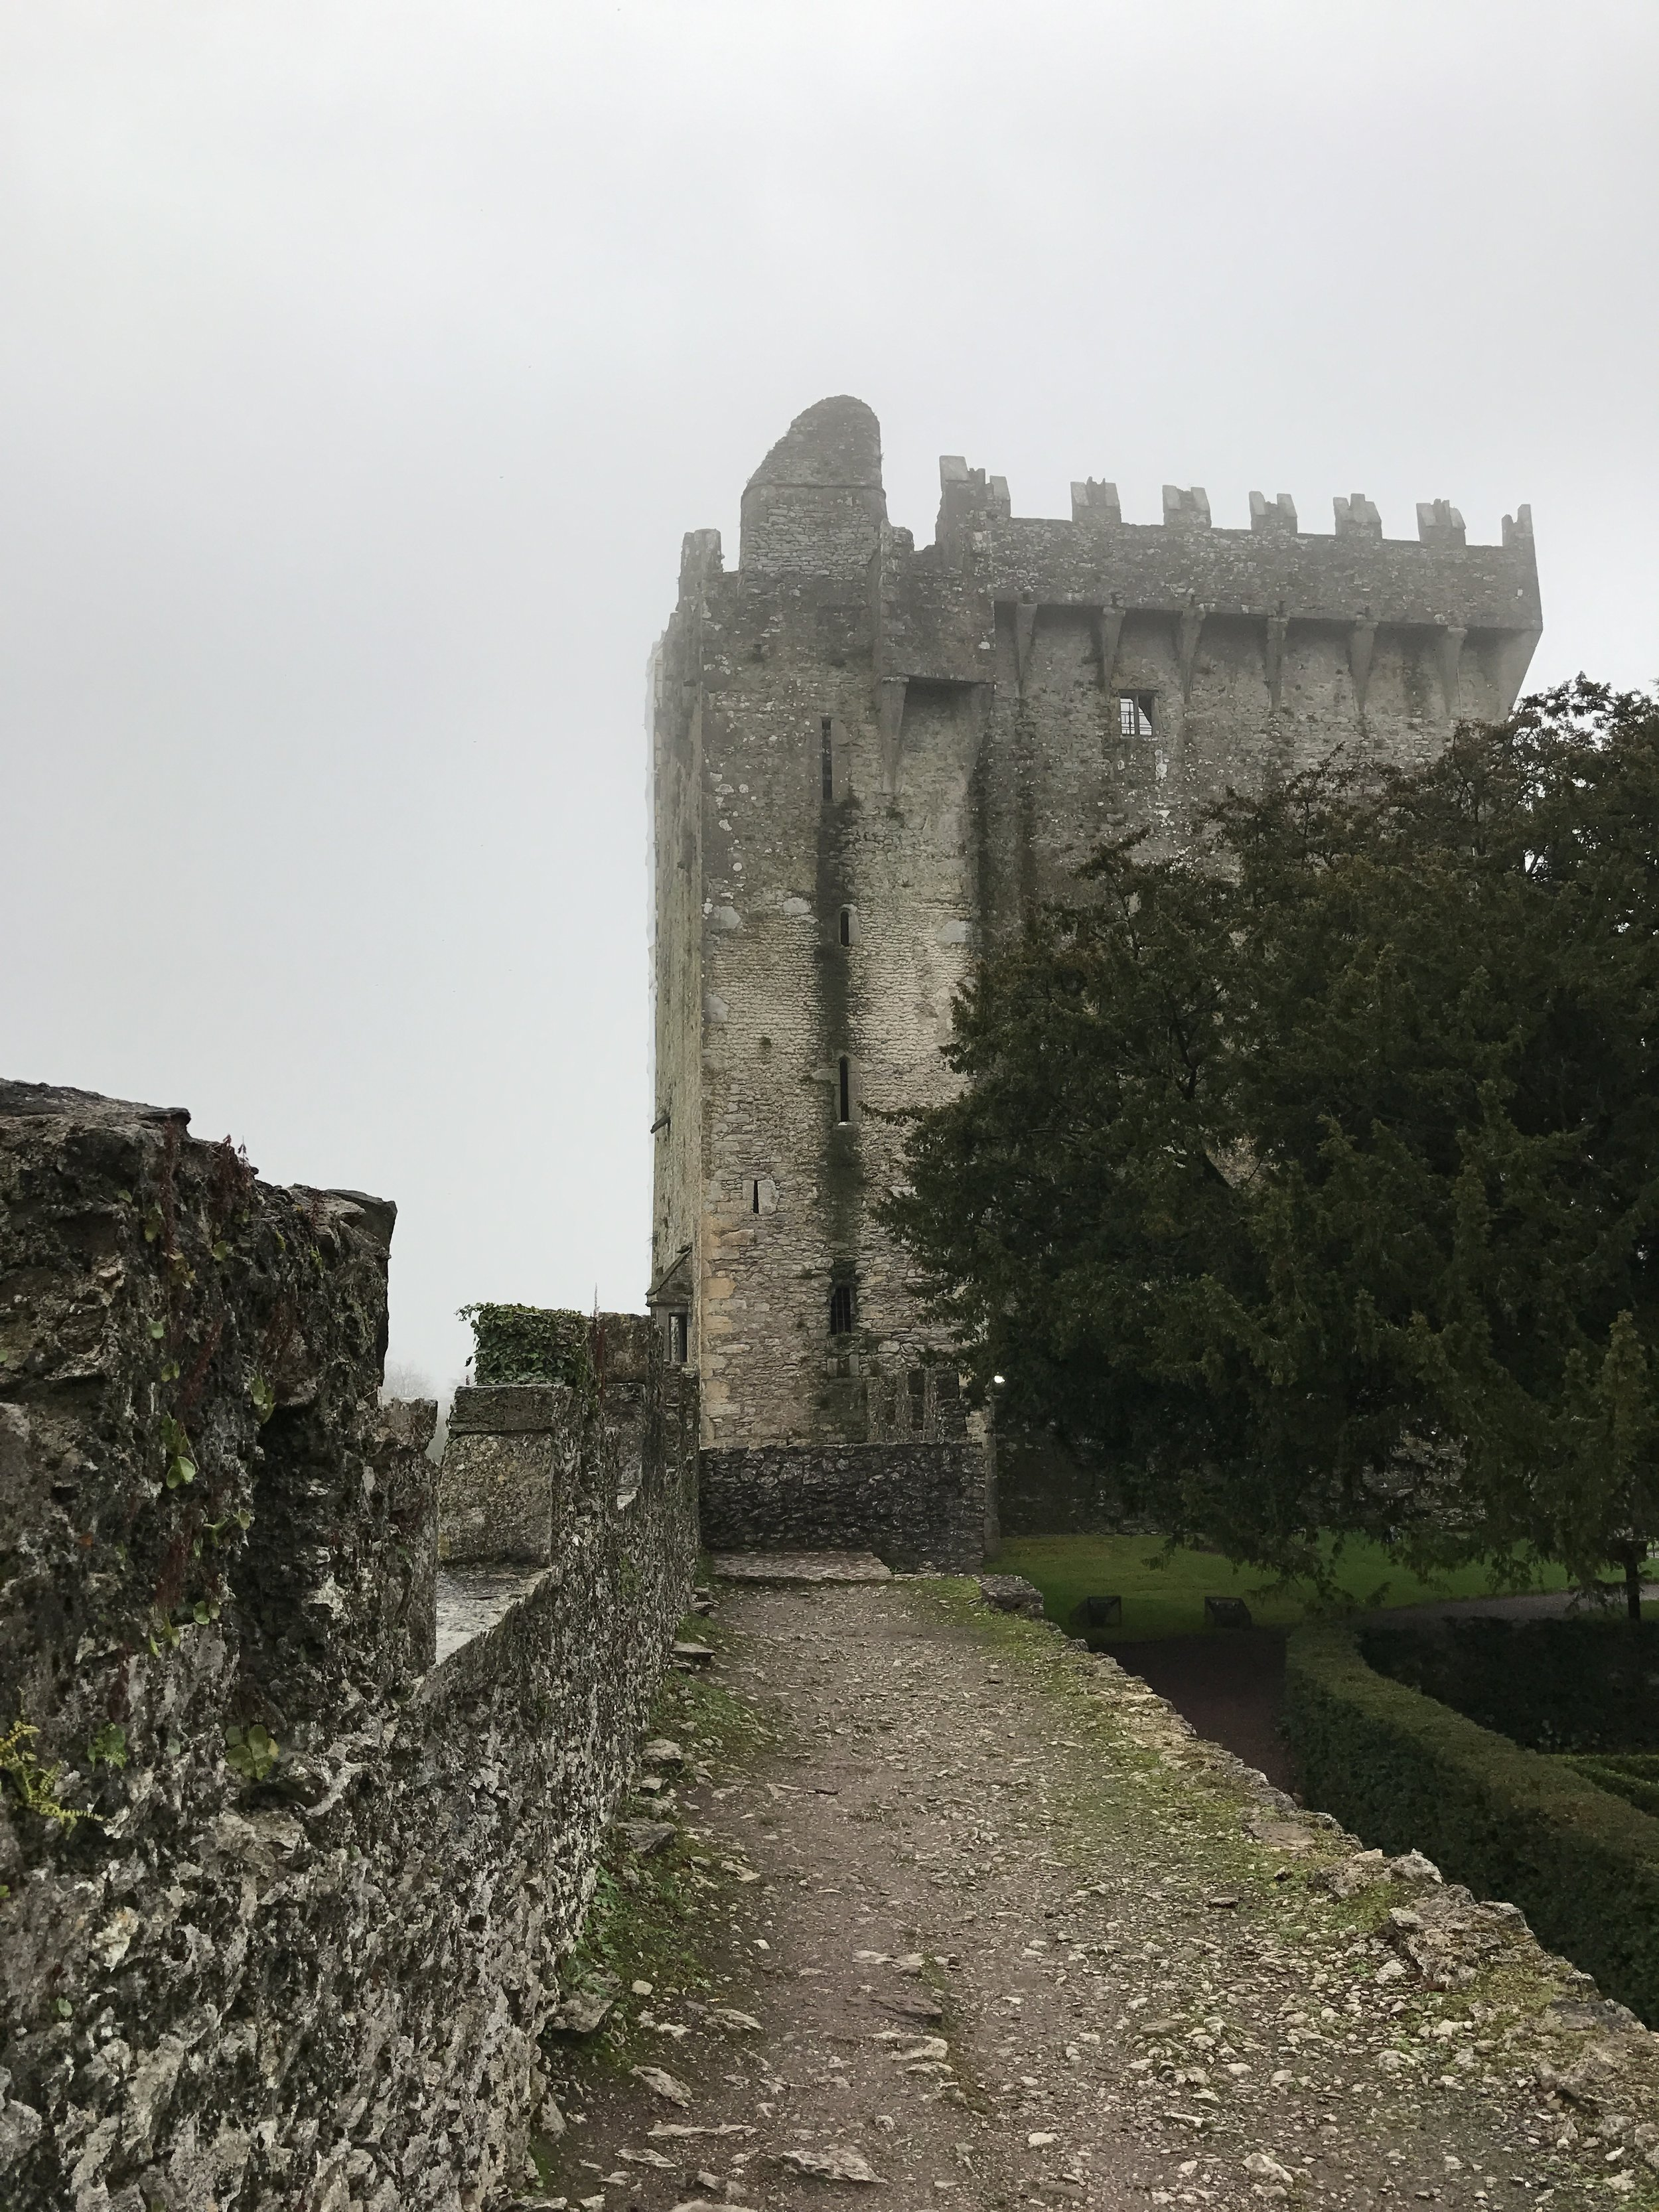 Without question, Blarney Castle is Ireland's most well-known medieval fortress.